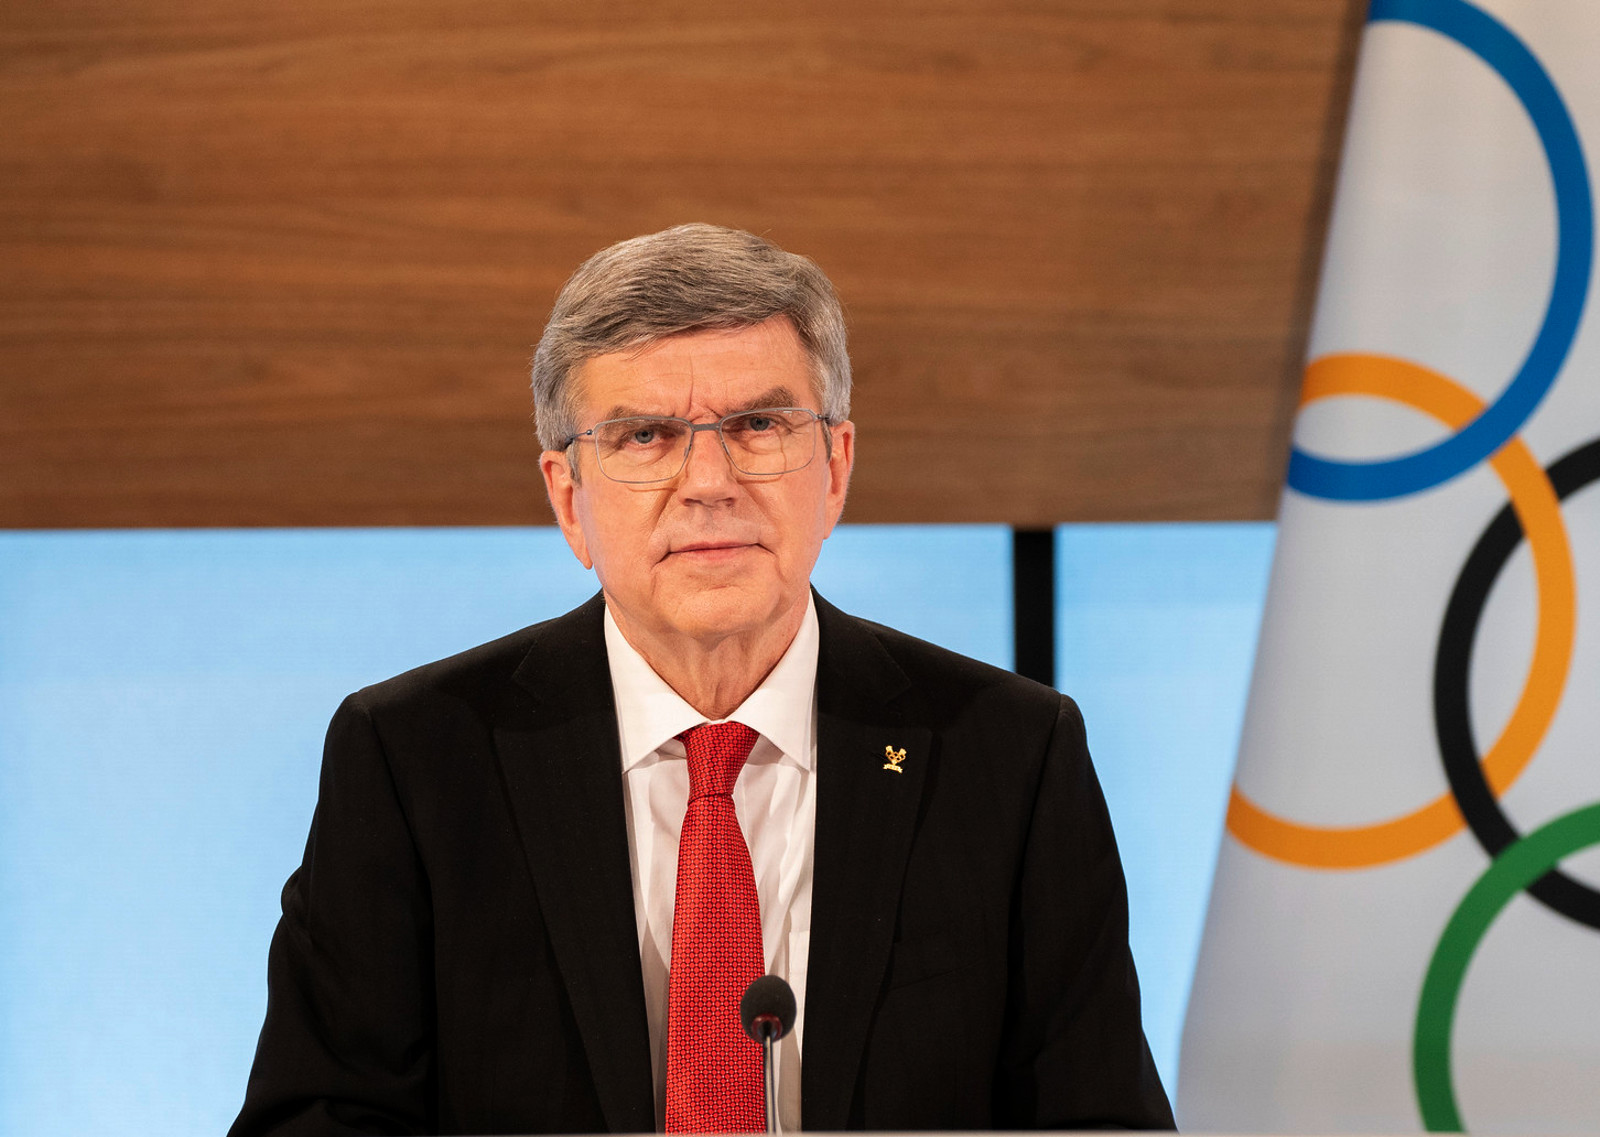 Thomas Bach has been re-elected as the President of the International Olympic Committee